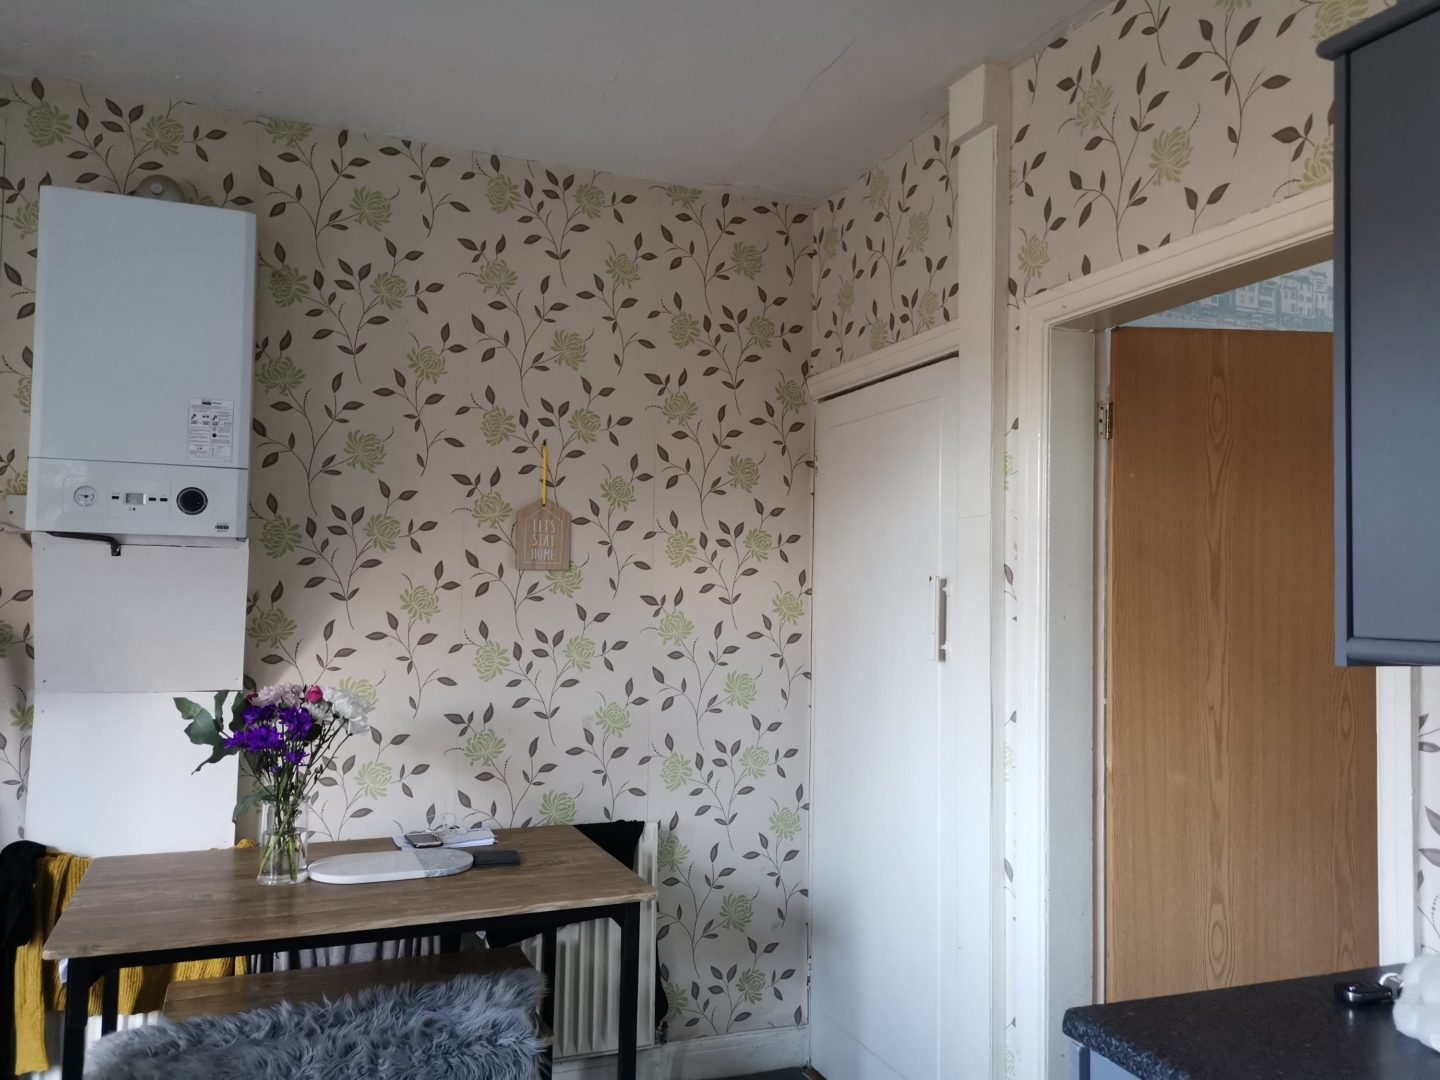 Kitchen Renovation under £250 - Flower Wallpaper and Awkwardly Placed Boiler